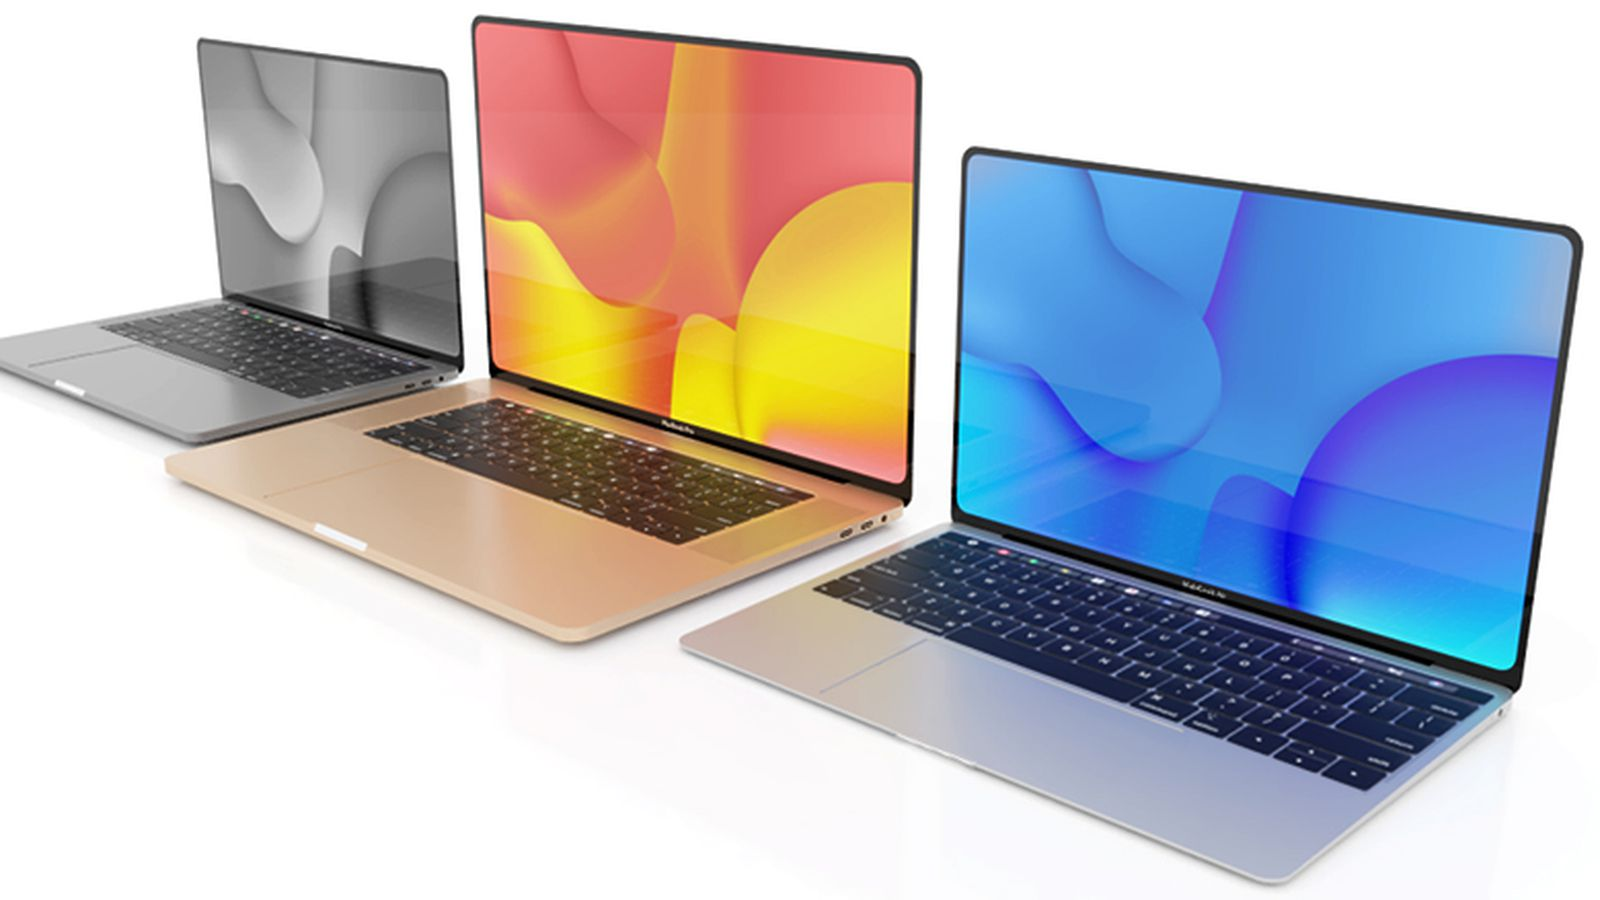 Reliable Leaker Suggests Redesigned Macbooks In 2021 Will Include Both Apple Silicon And Intel Models Macrumors